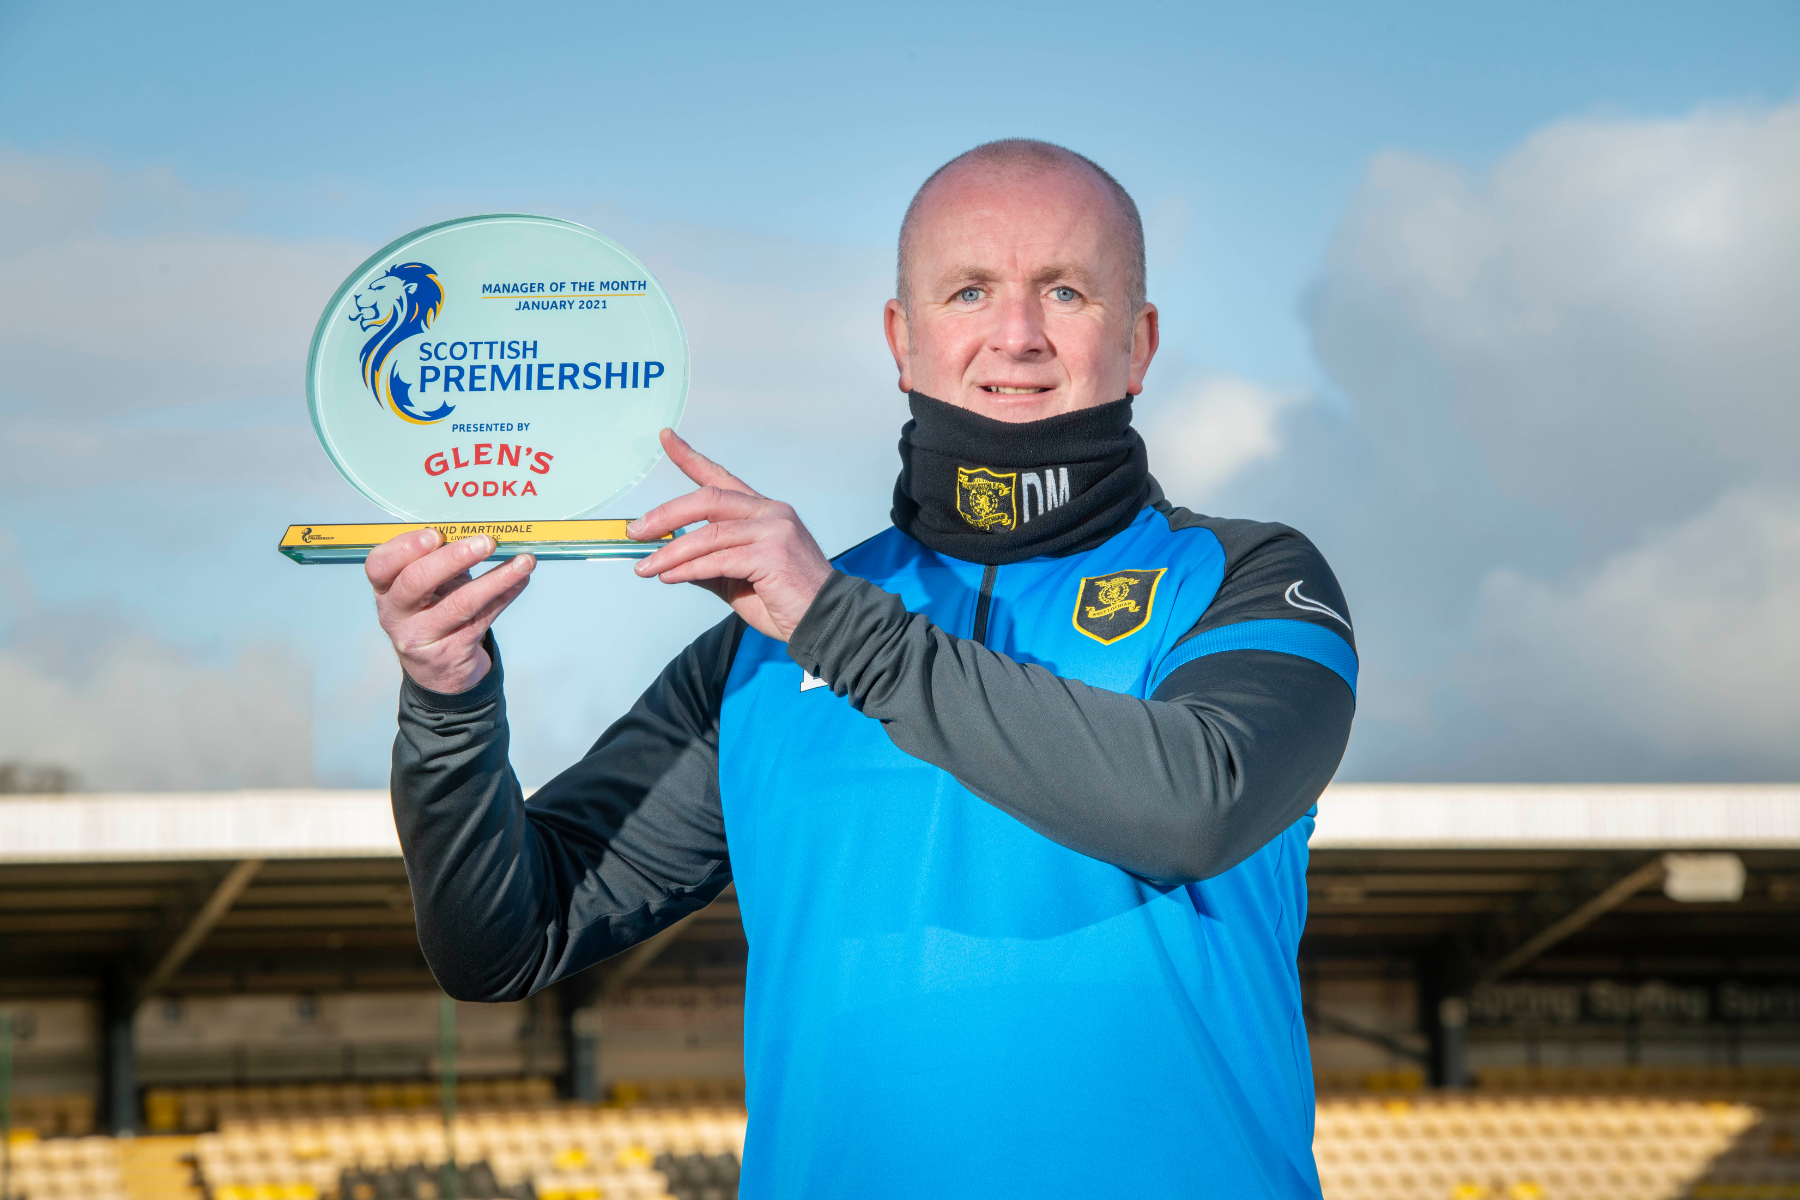 Livingston boss David Martindale named Scottish Premiership manager of the month